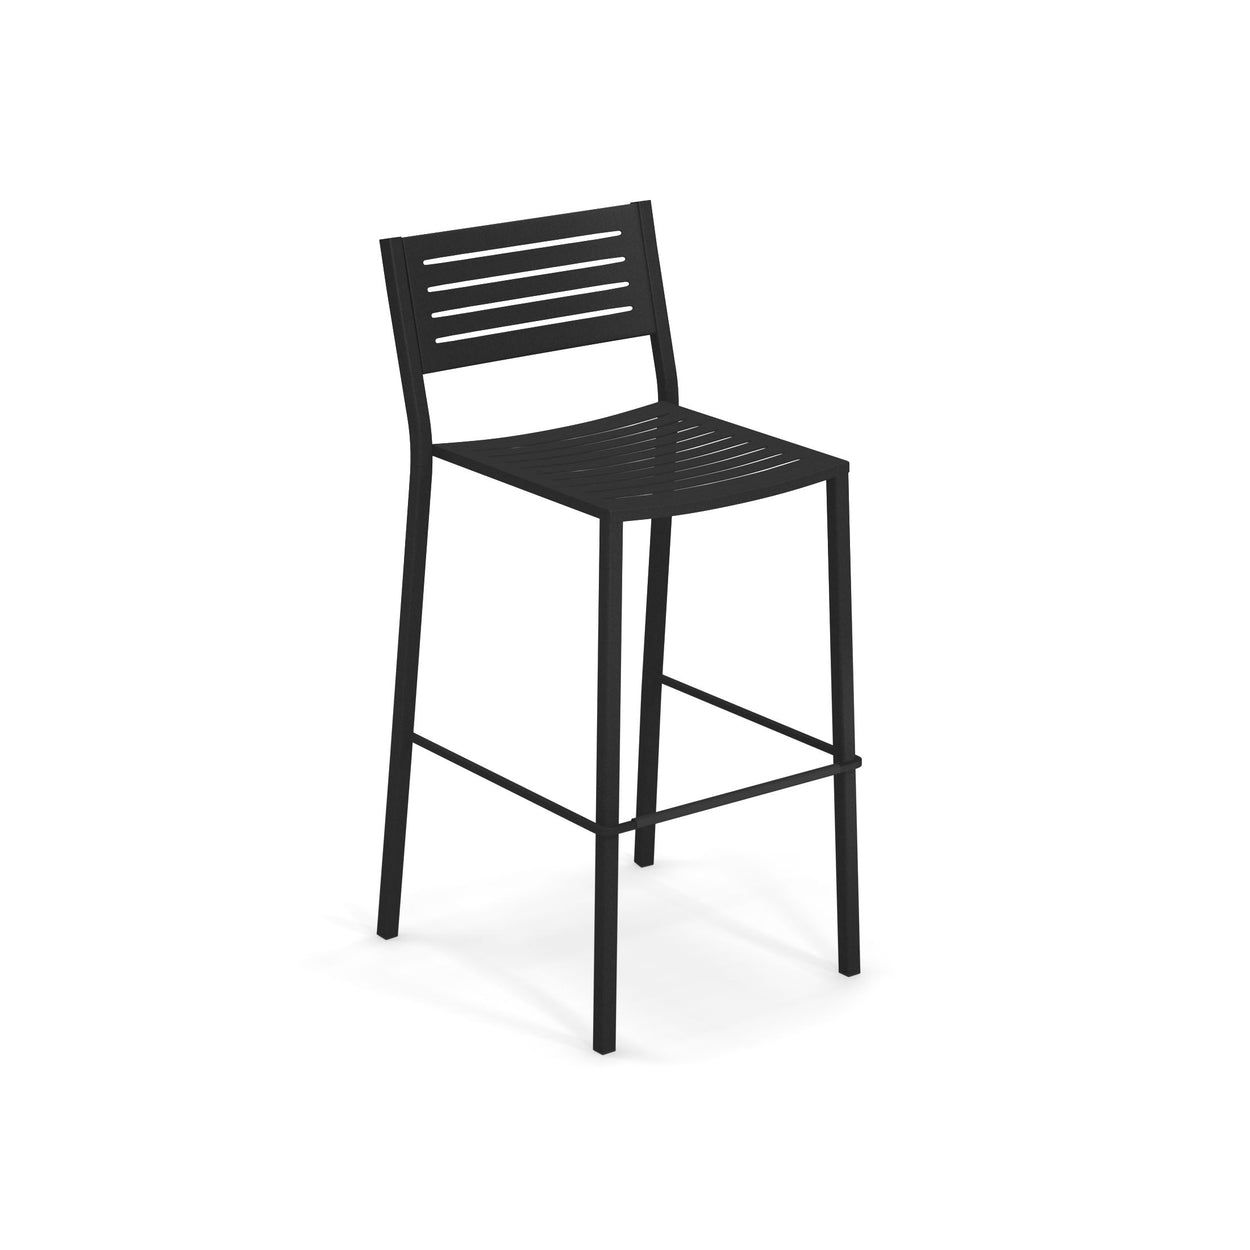 Terrific Emu Segno Bar Stool Set Of 4 Caraccident5 Cool Chair Designs And Ideas Caraccident5Info